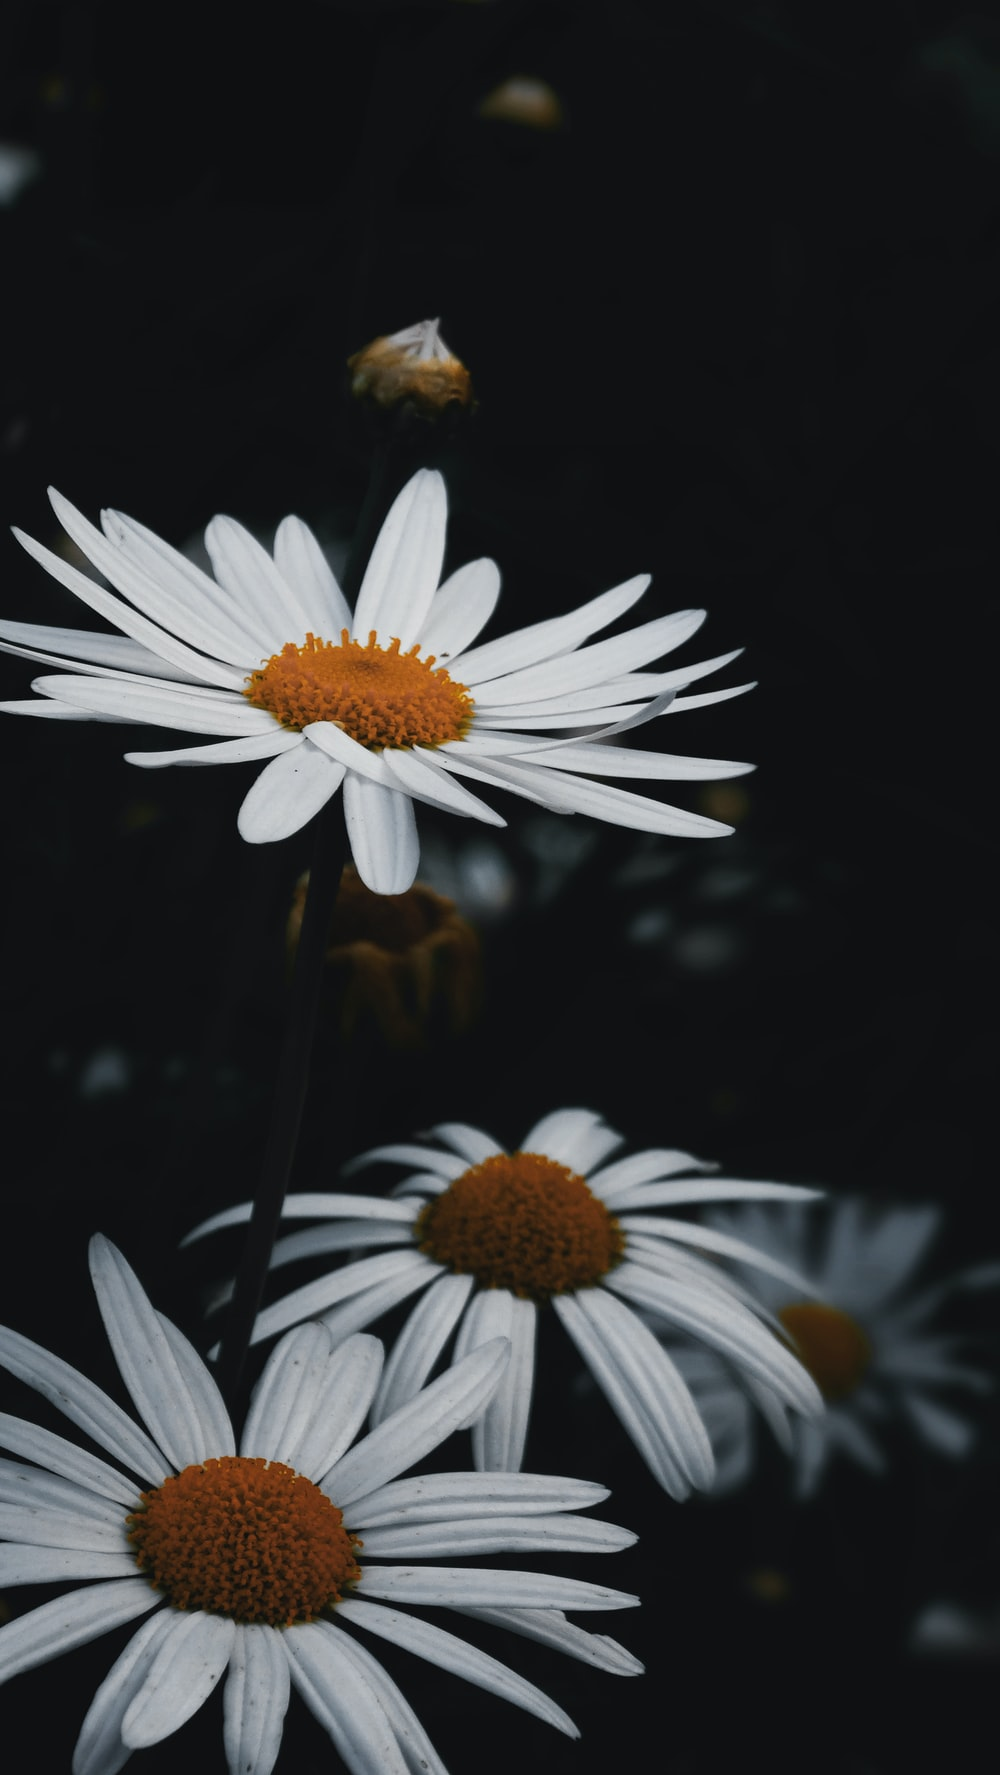 500 daisy pictures download free images on unsplash shallow focus photo of white daisy flowers izmirmasajfo